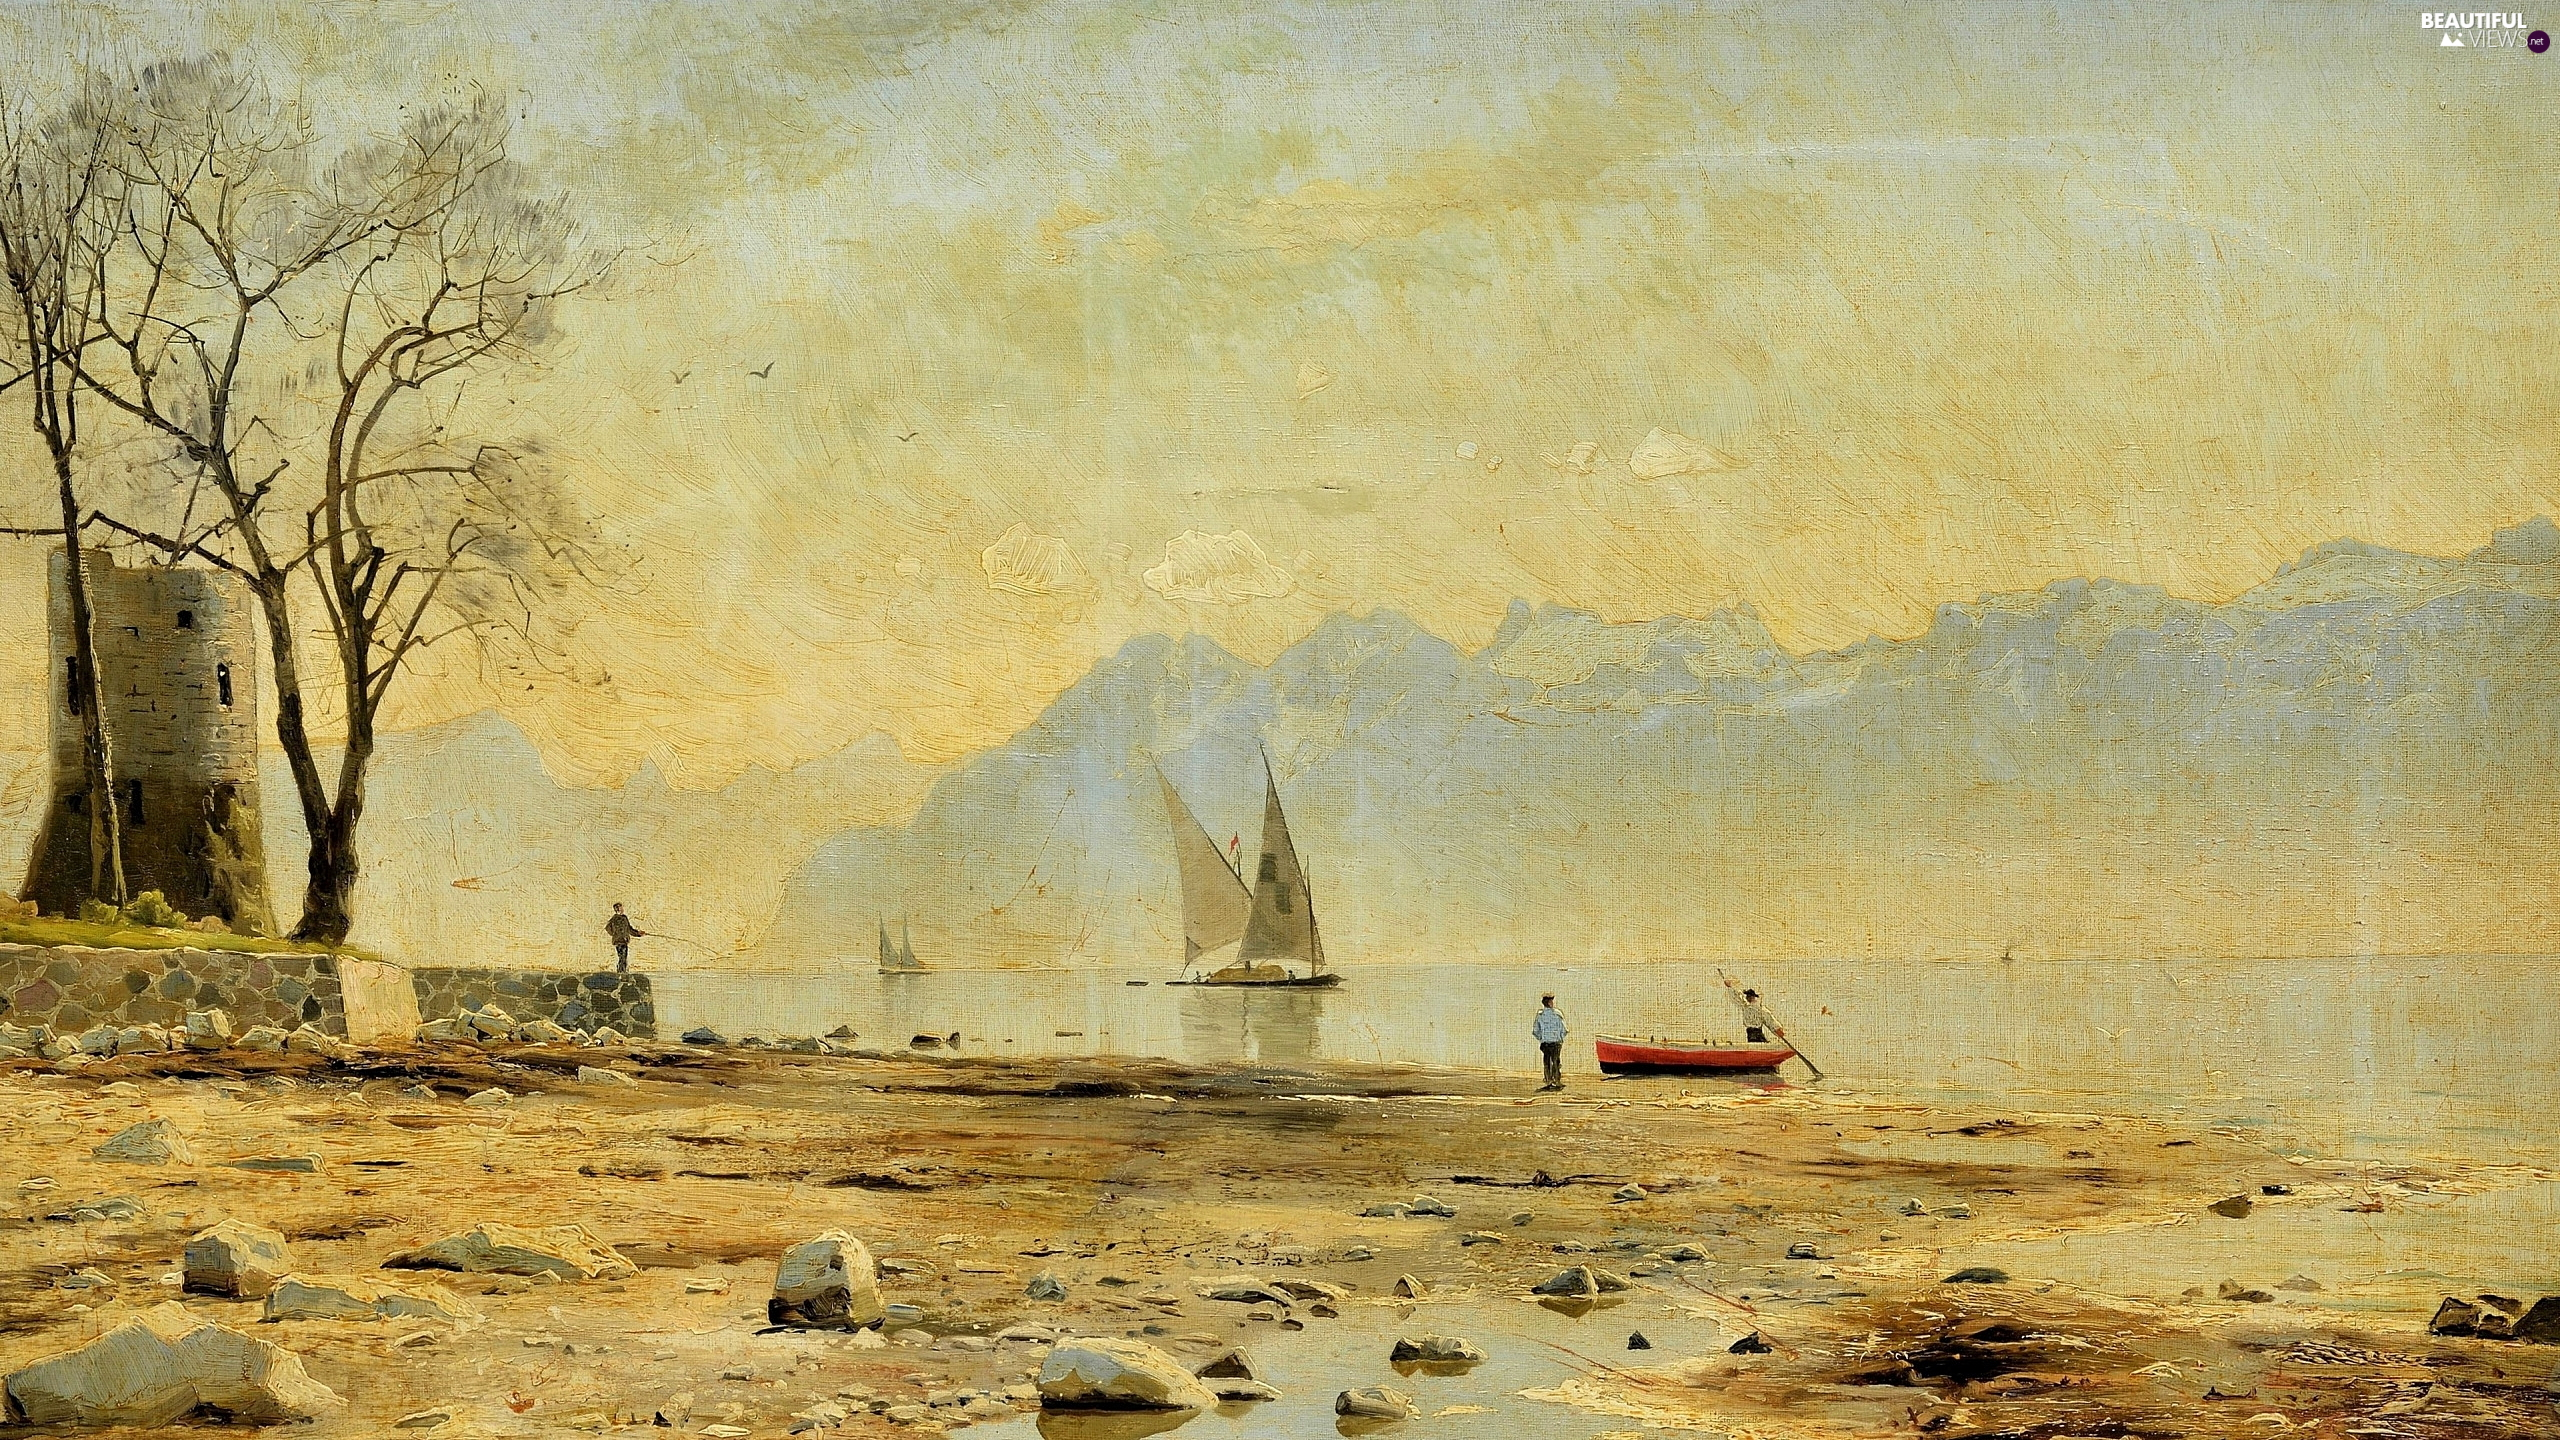 picture, painting, Peder Monsted, angler, coast, Stones, Mountains, lake, Sailboats